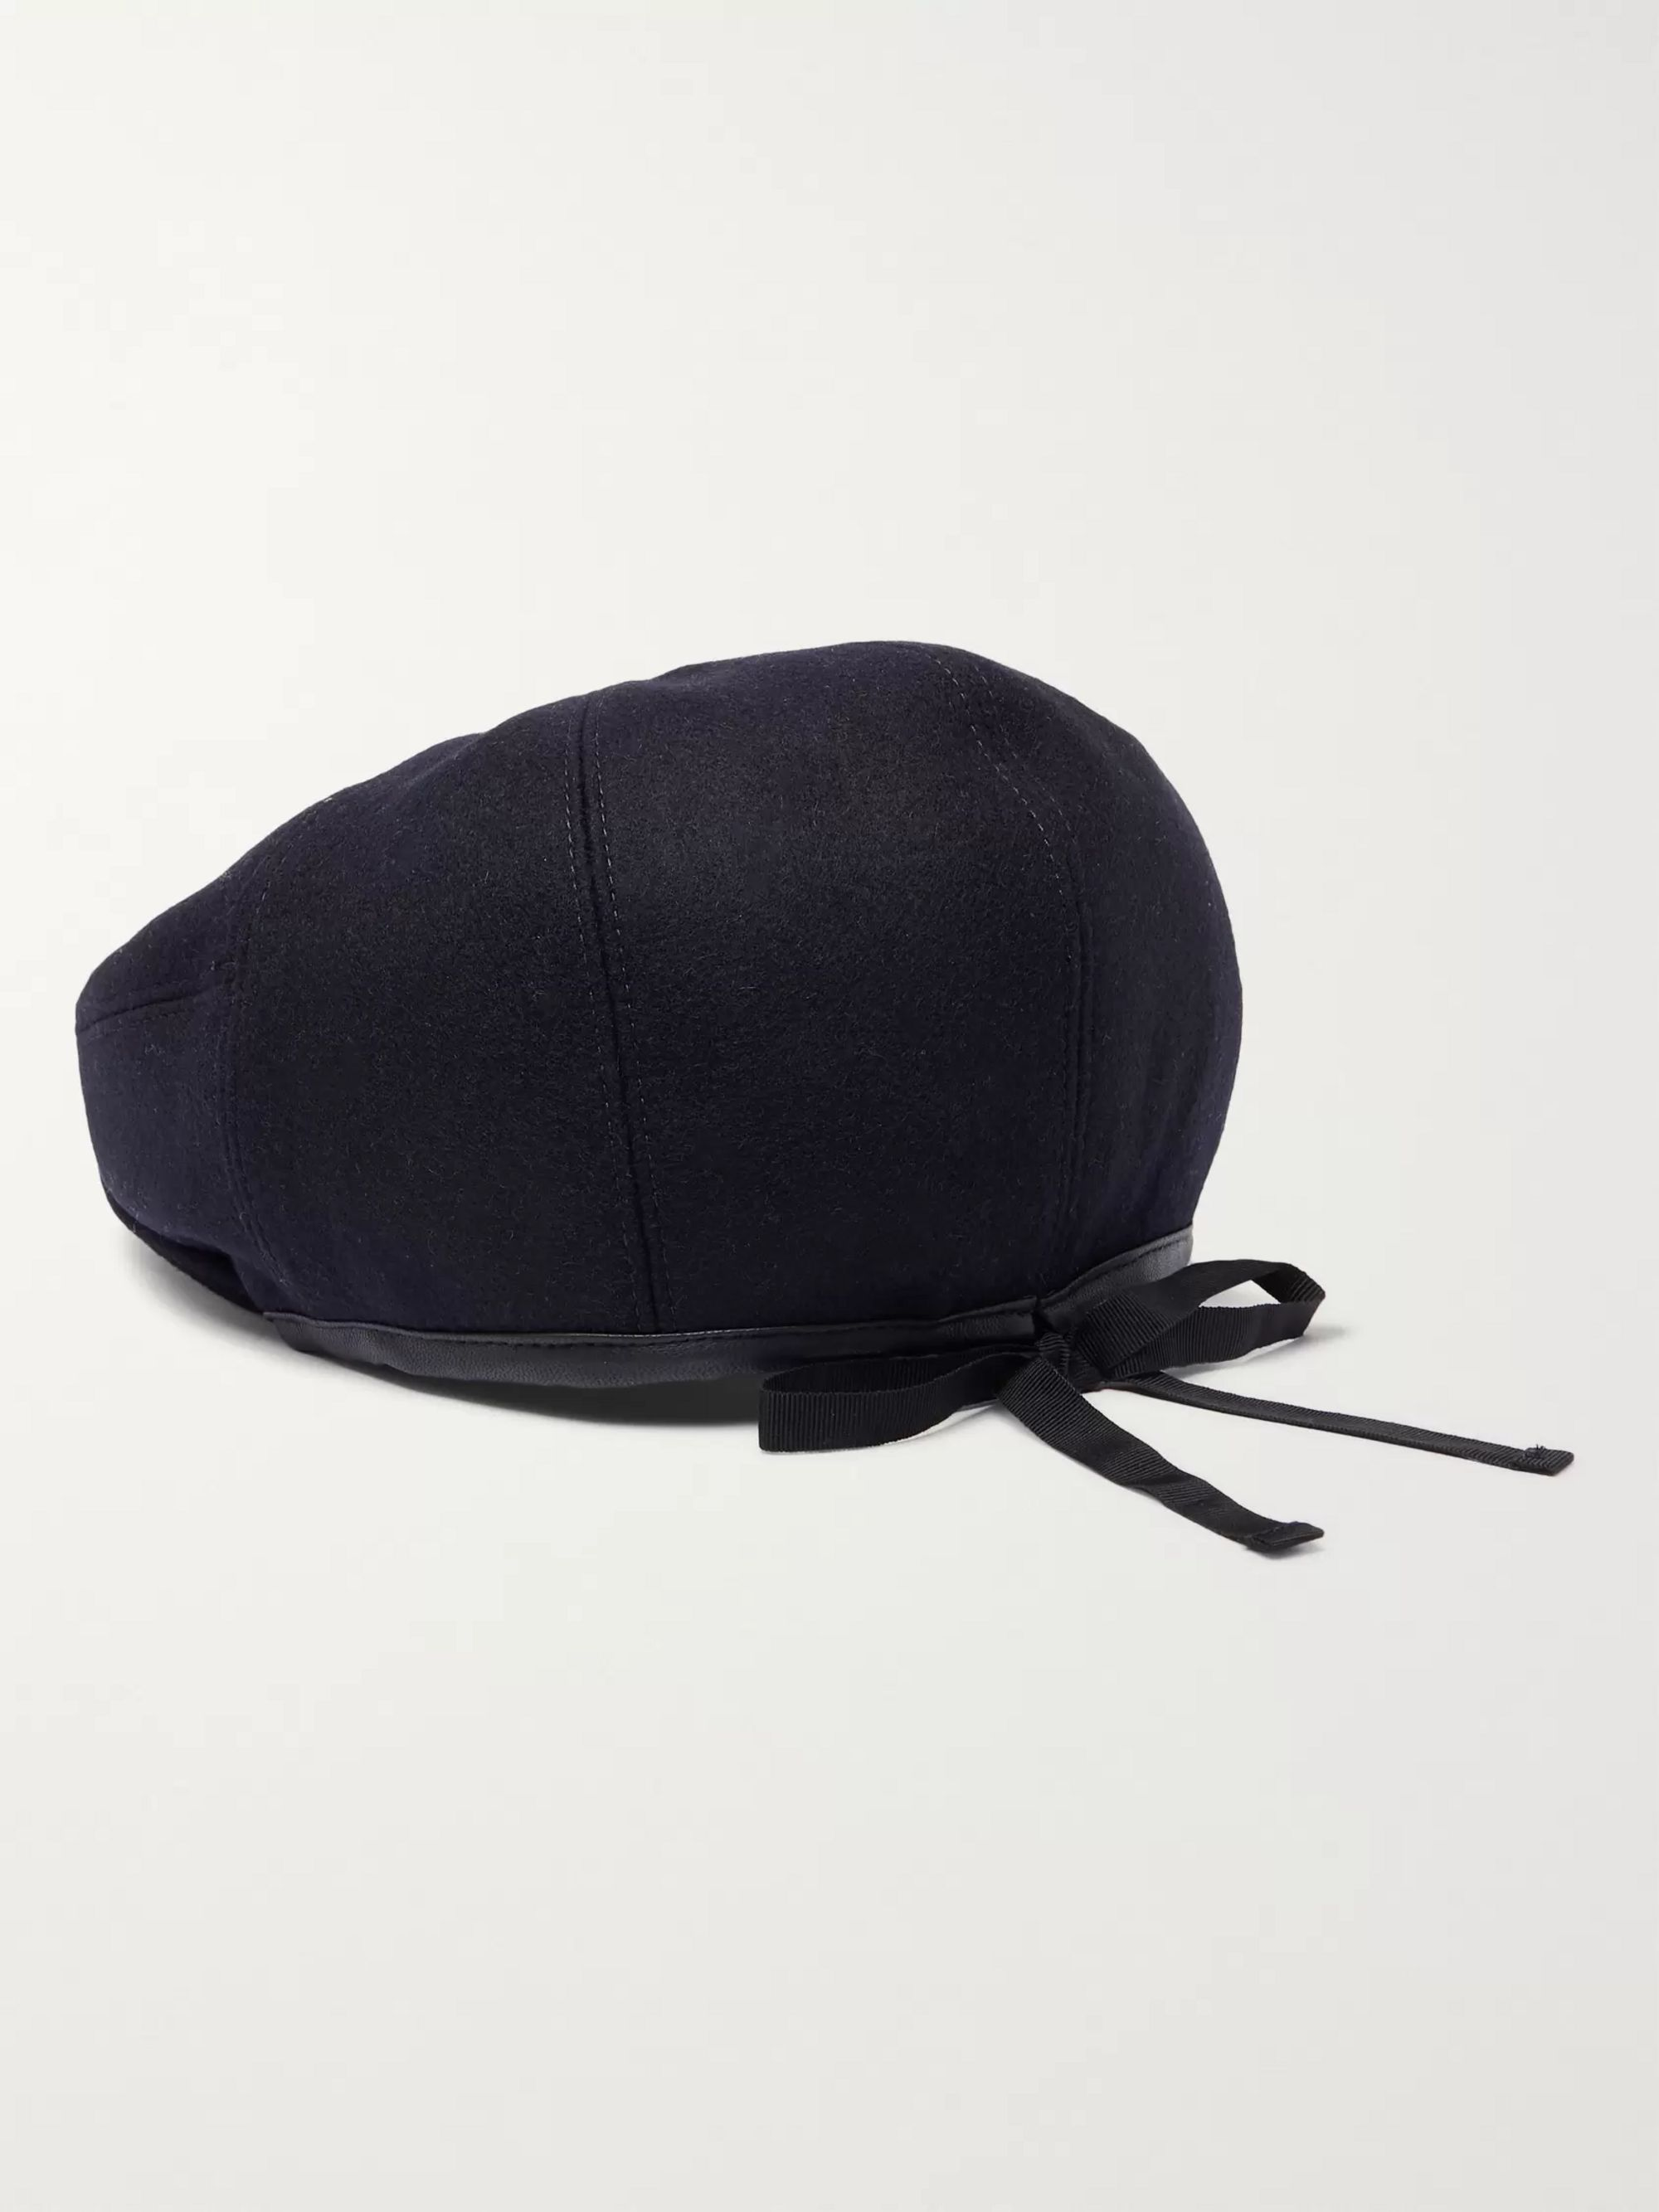 Alexander McQueen Leather-Trimmed Wool Flat Cap